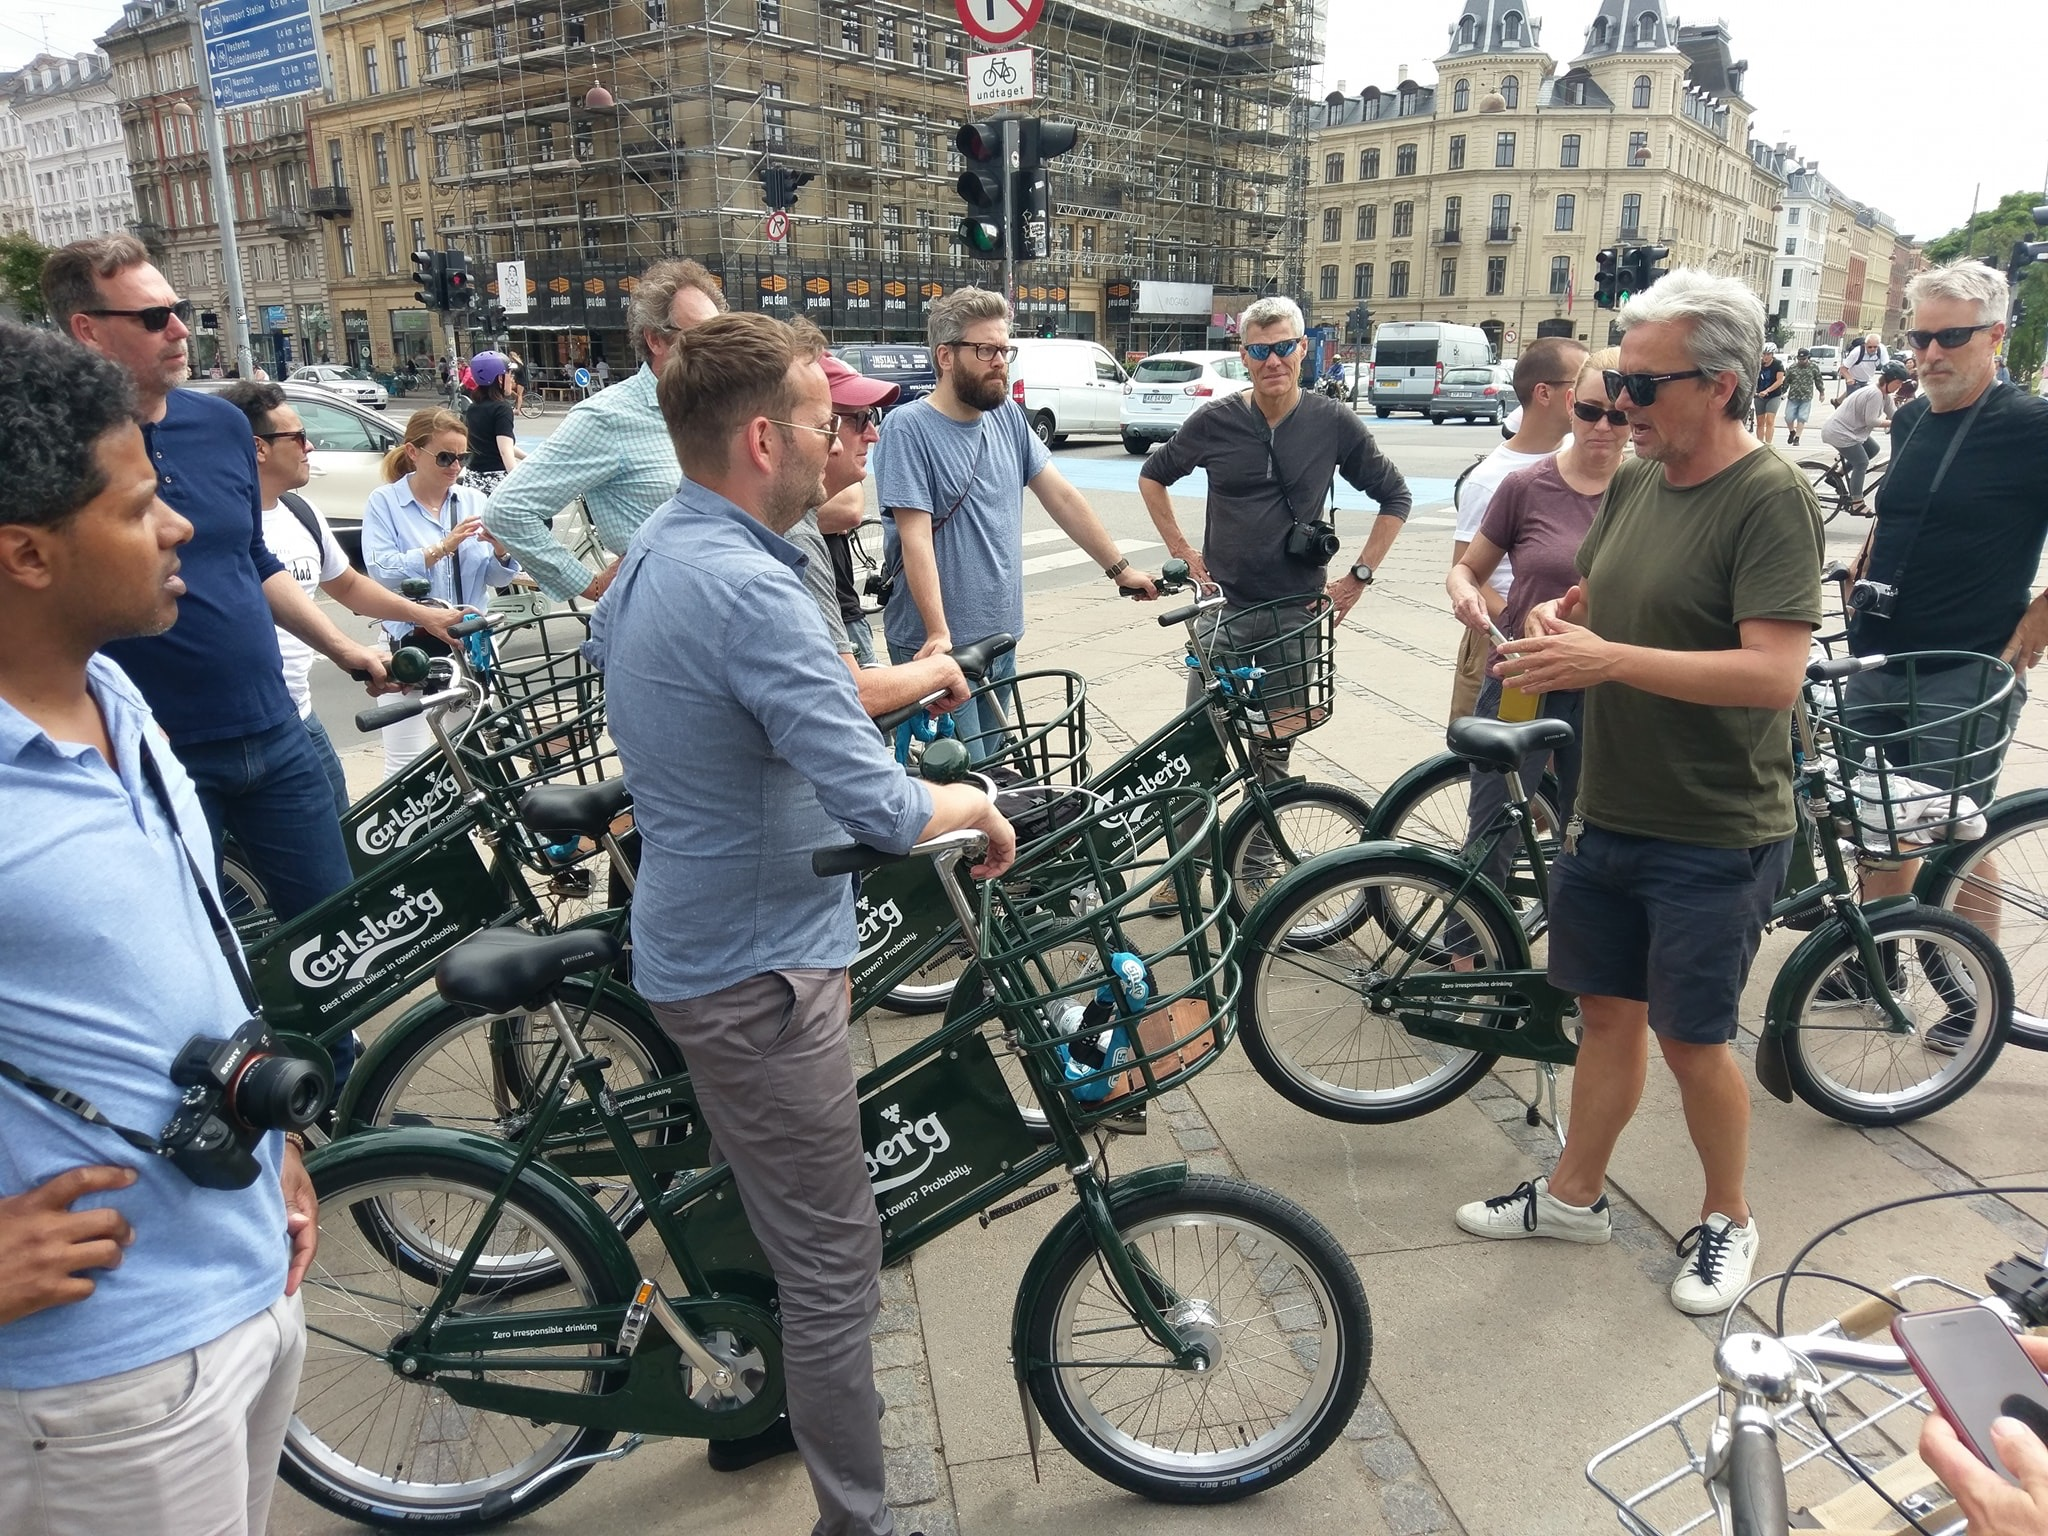 People on bikes in city listening to someone speak